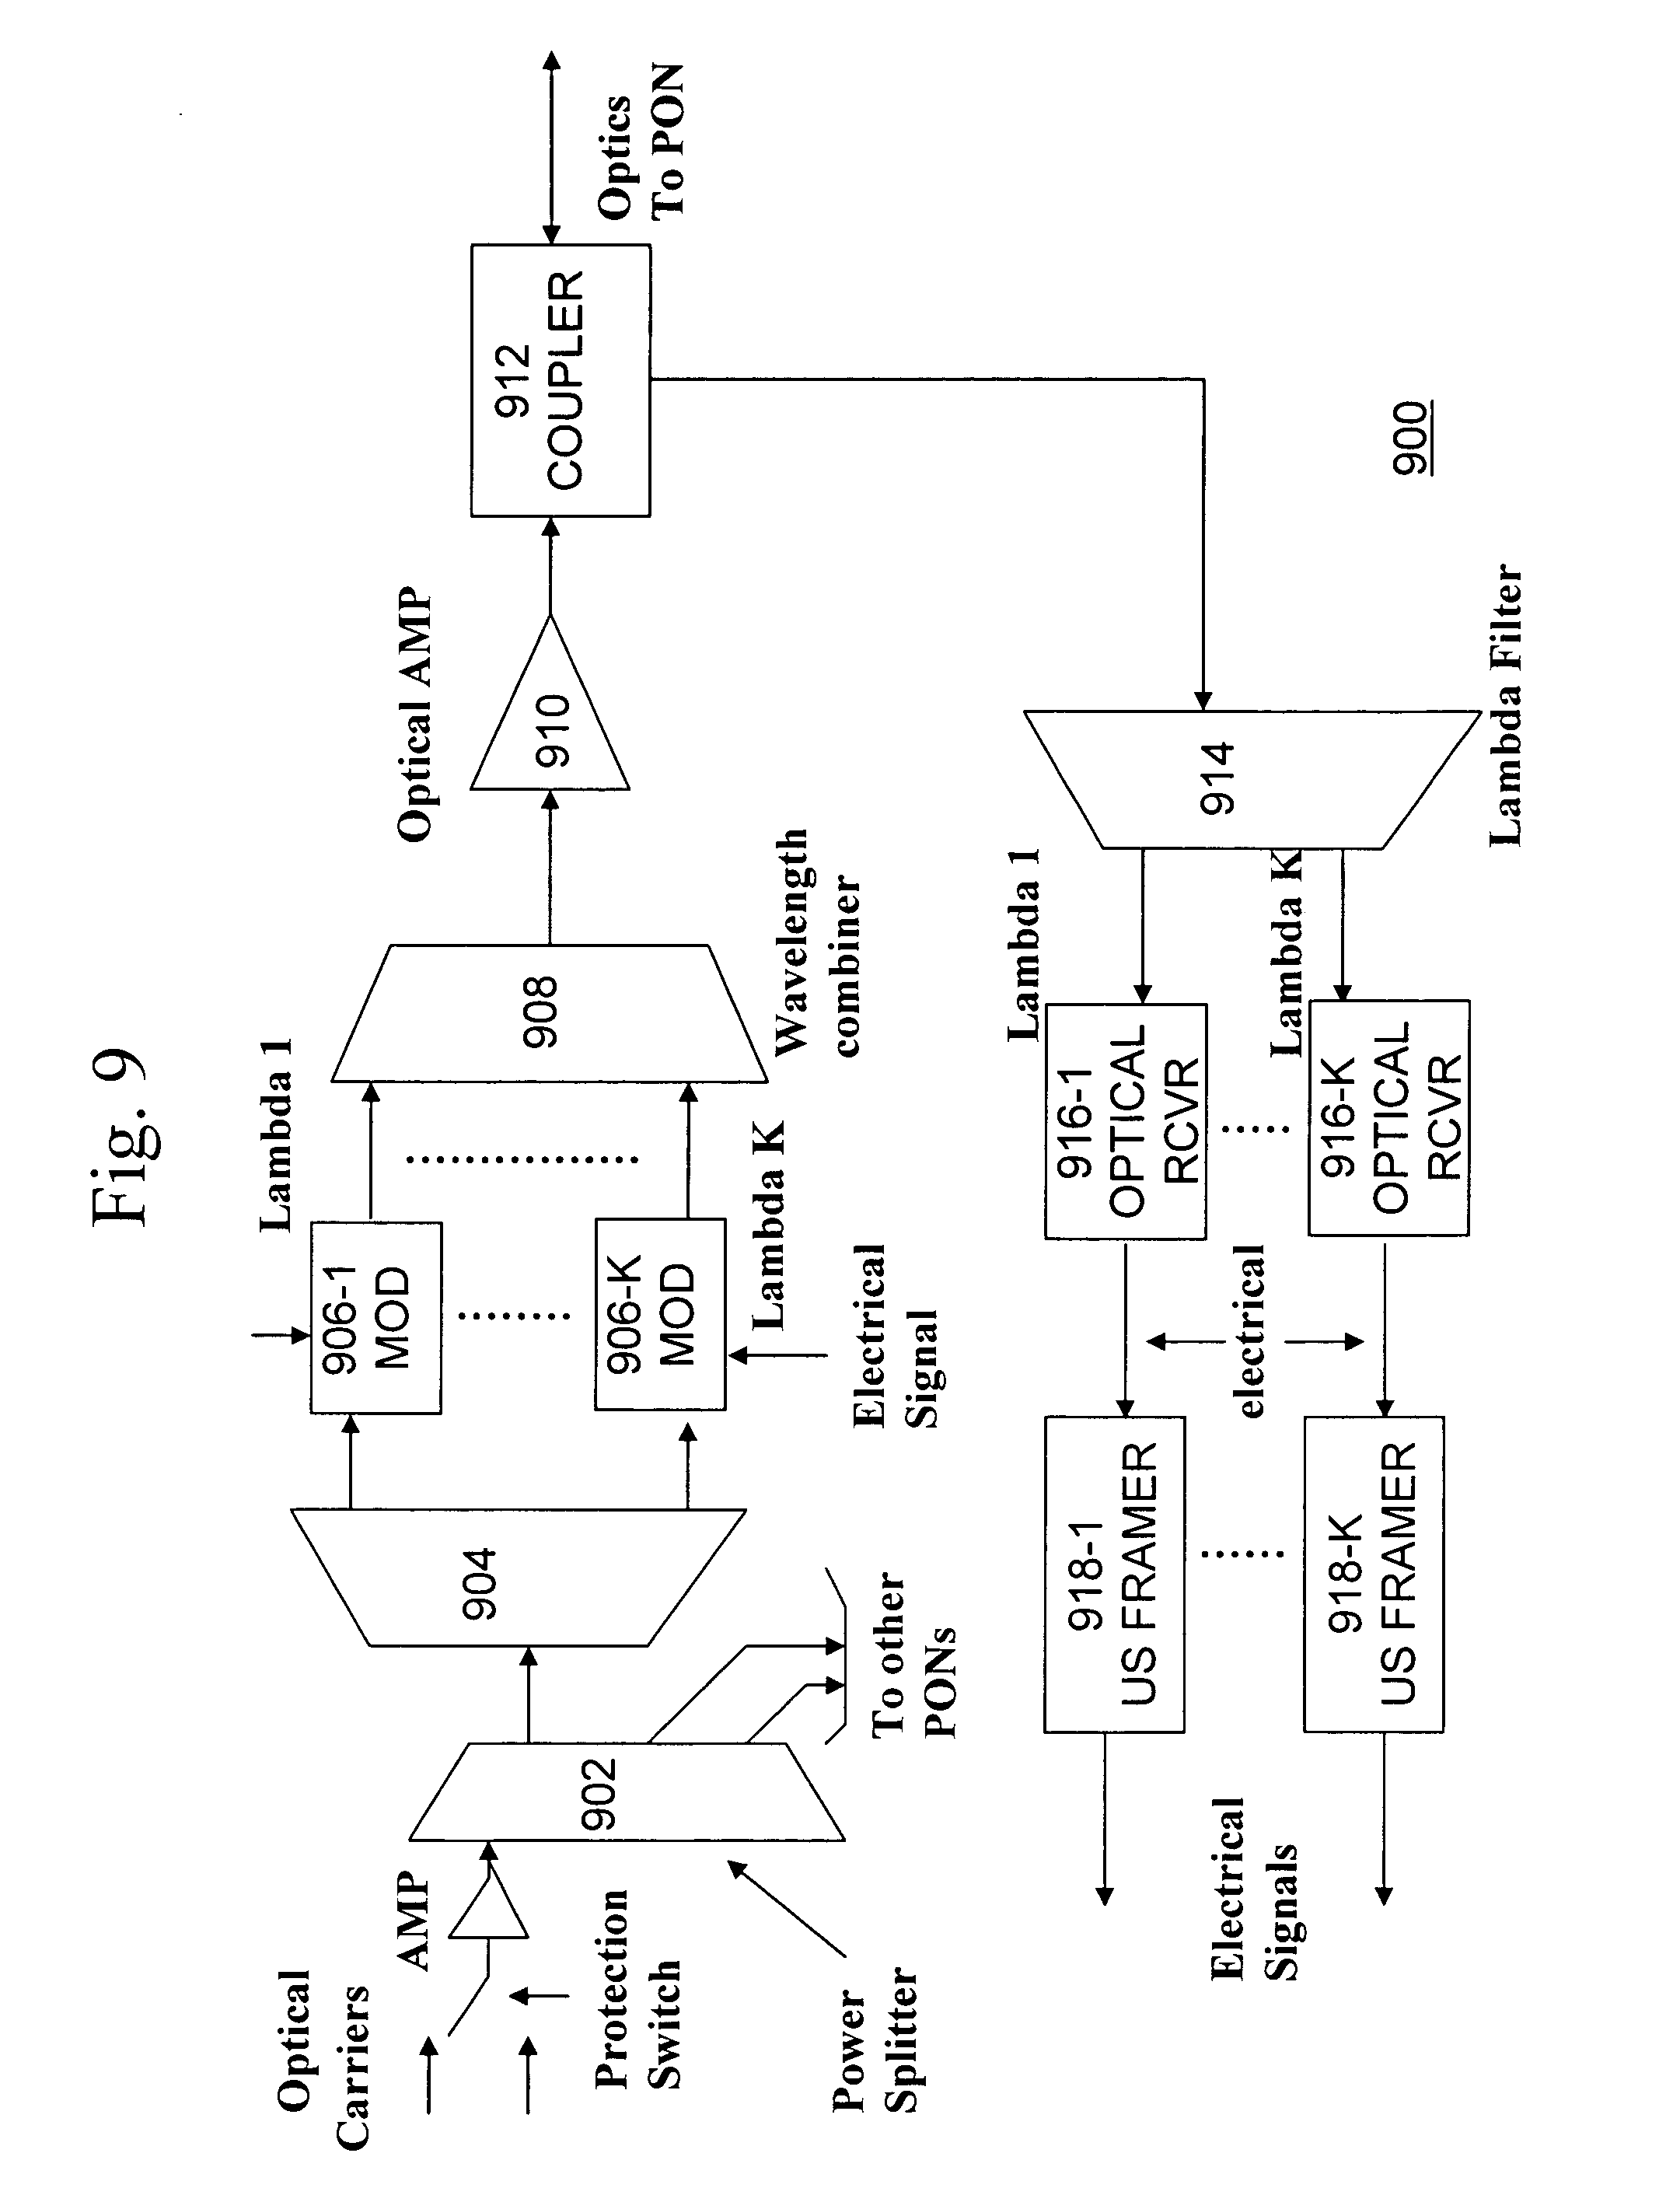 Thesis on subcarrier modulation for passive optical networks